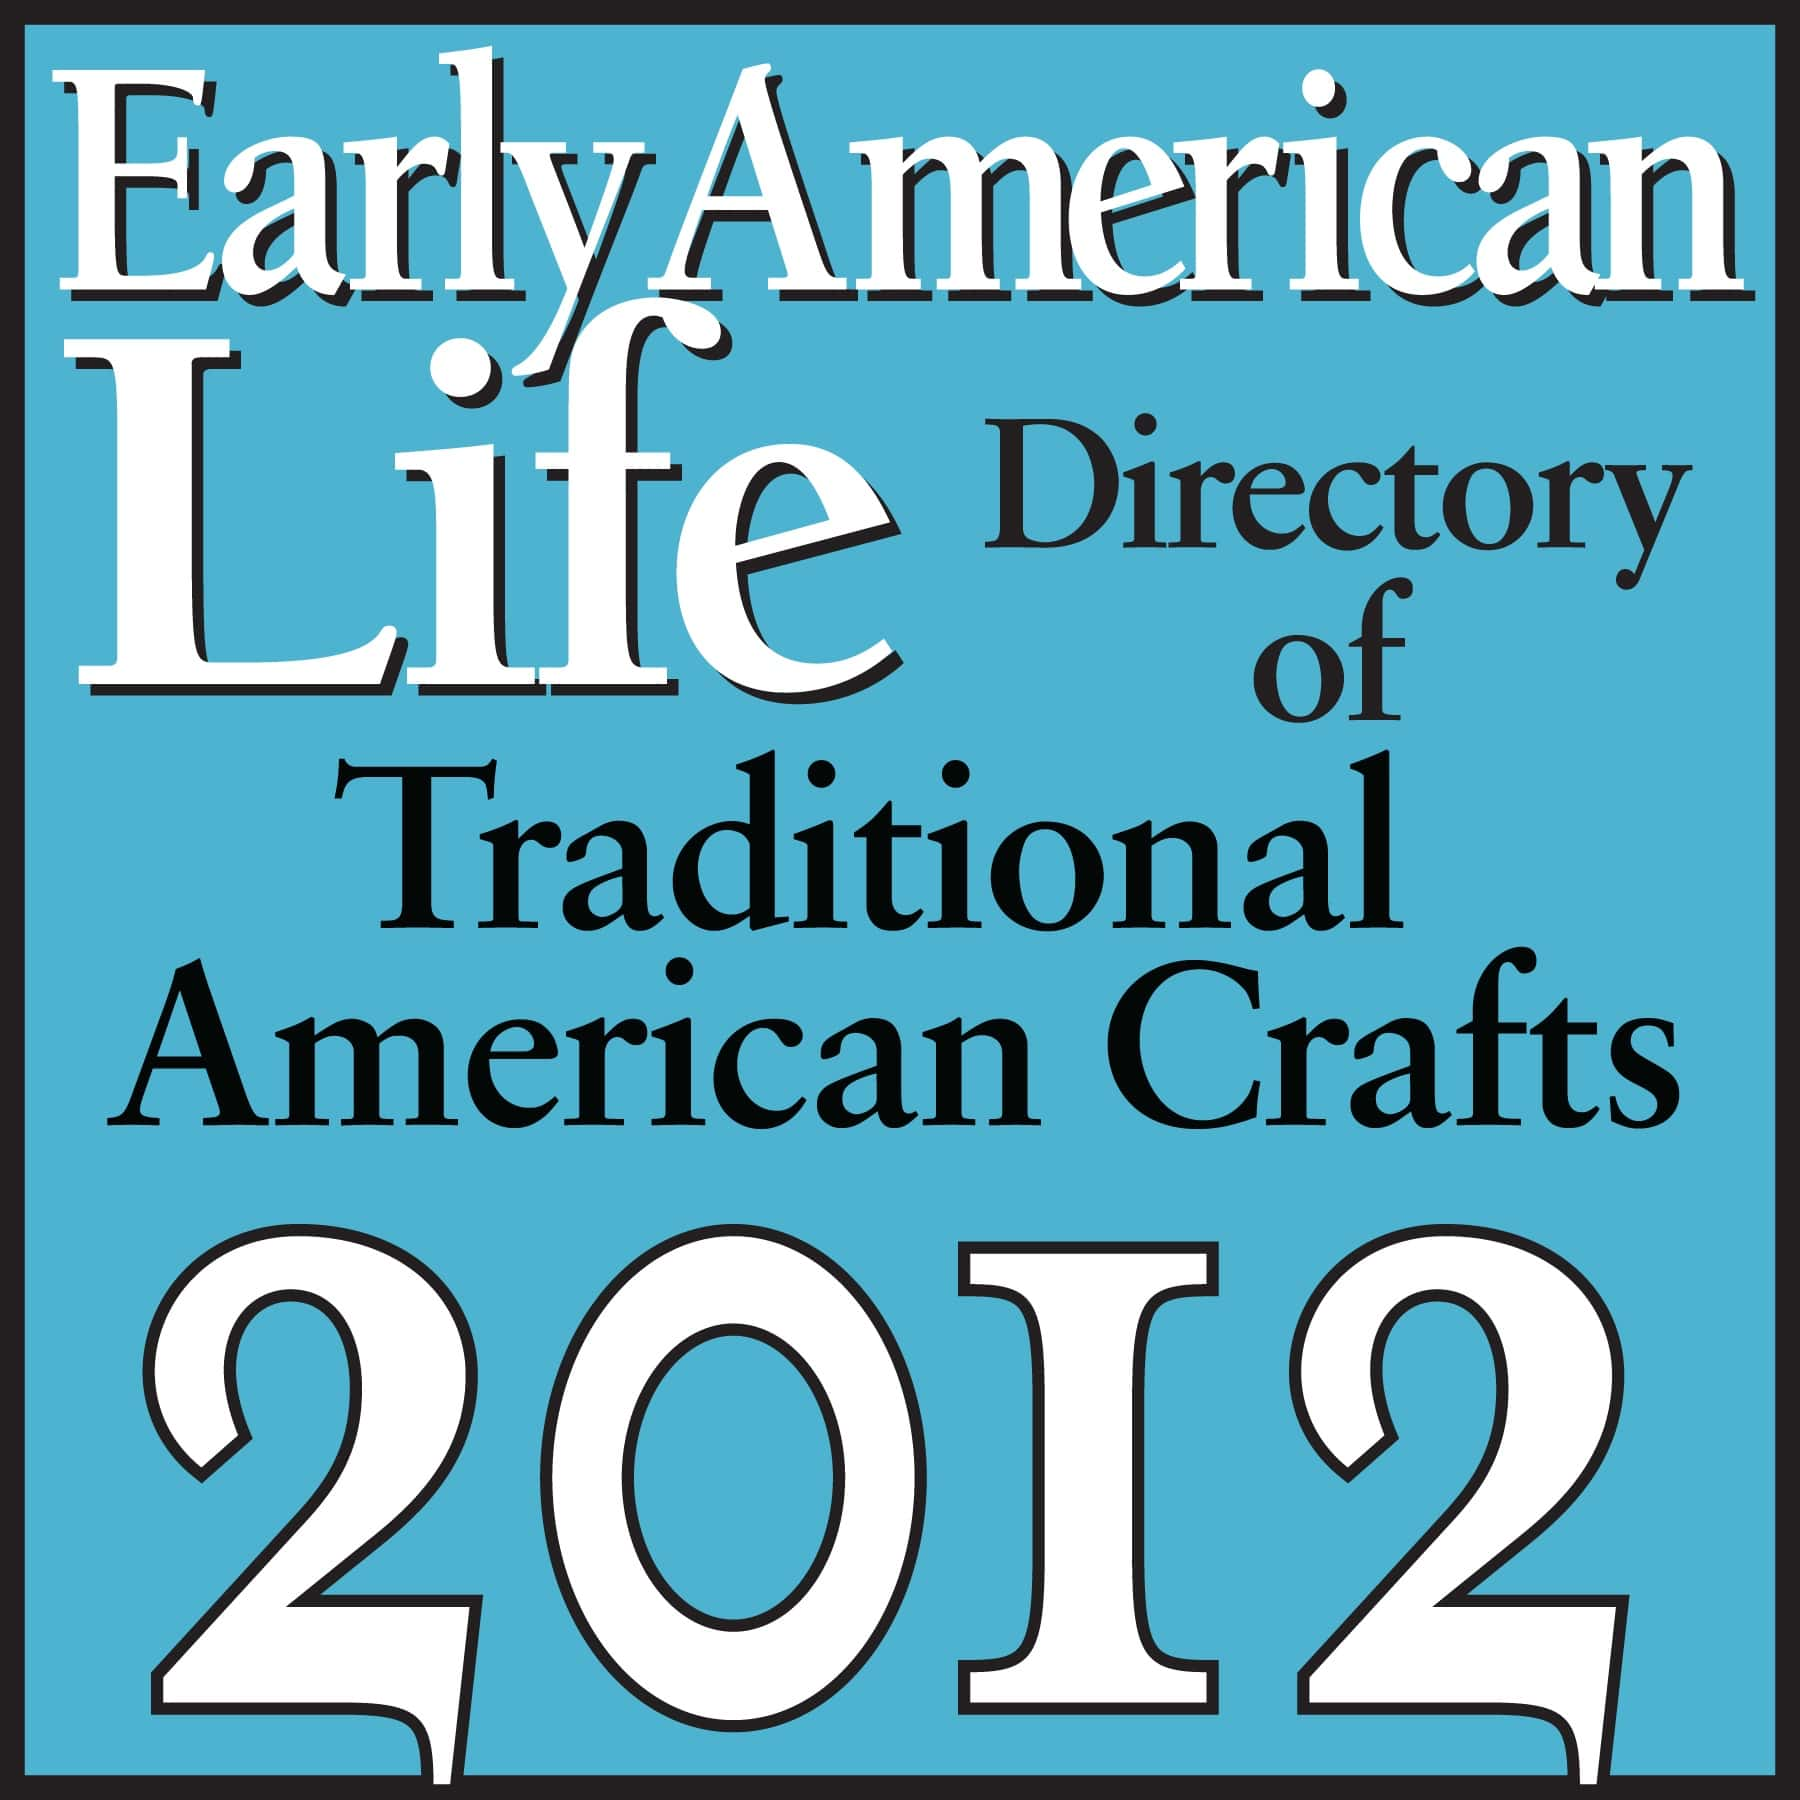 Early American Life Traditional American Crafts logo 2012